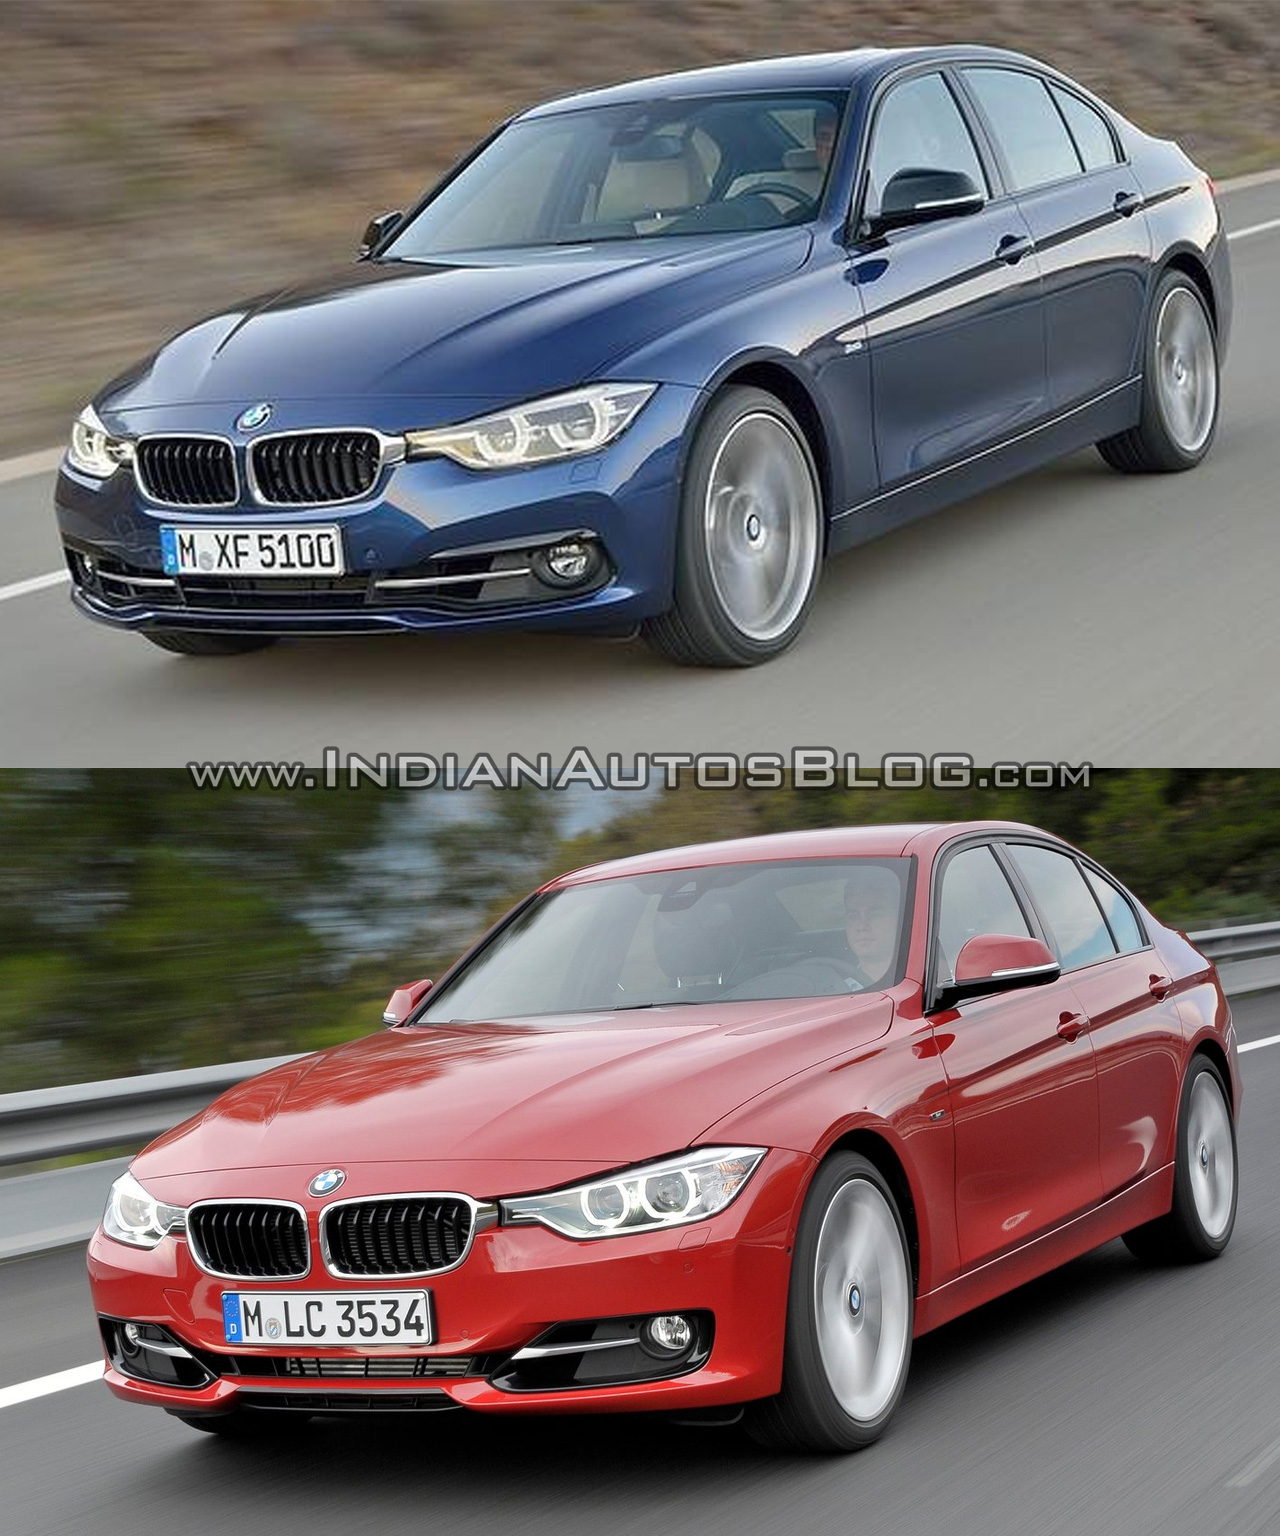 2015 Bmw 3 Series Facelift Vs Older Model Old Vs New